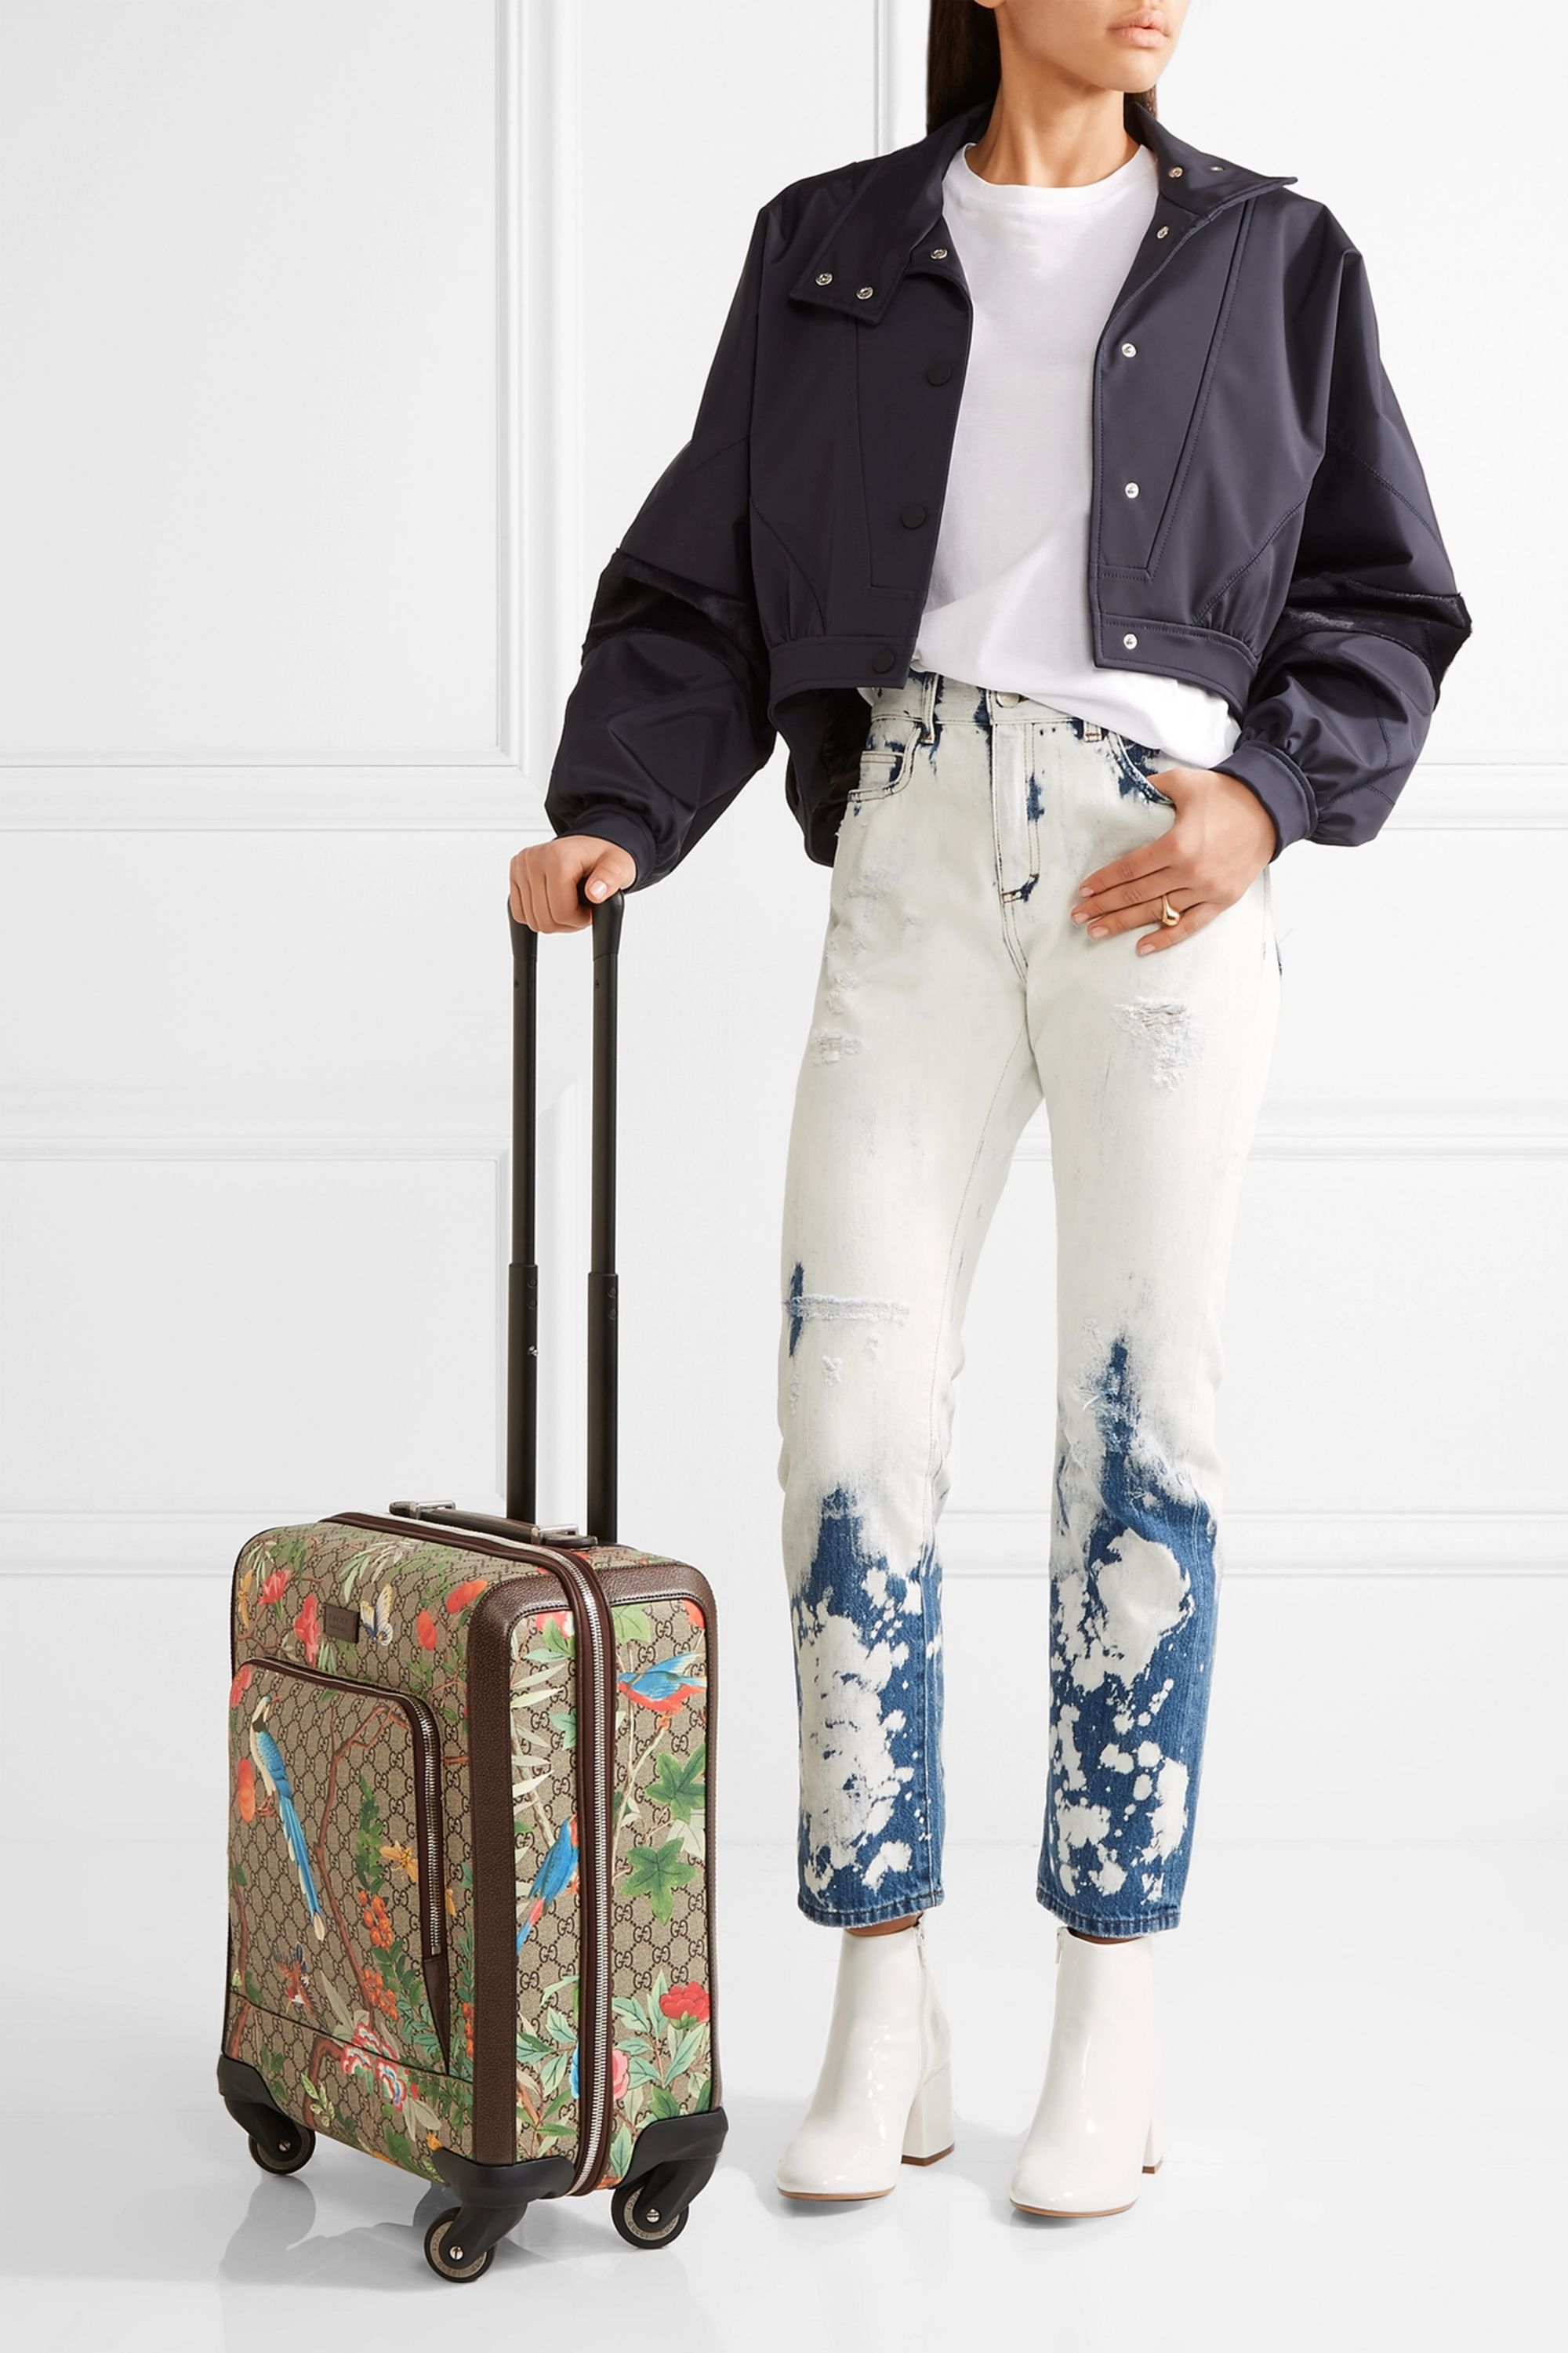 Gucci Gran Turismo leather-trimmed coated-canvas travel trolley